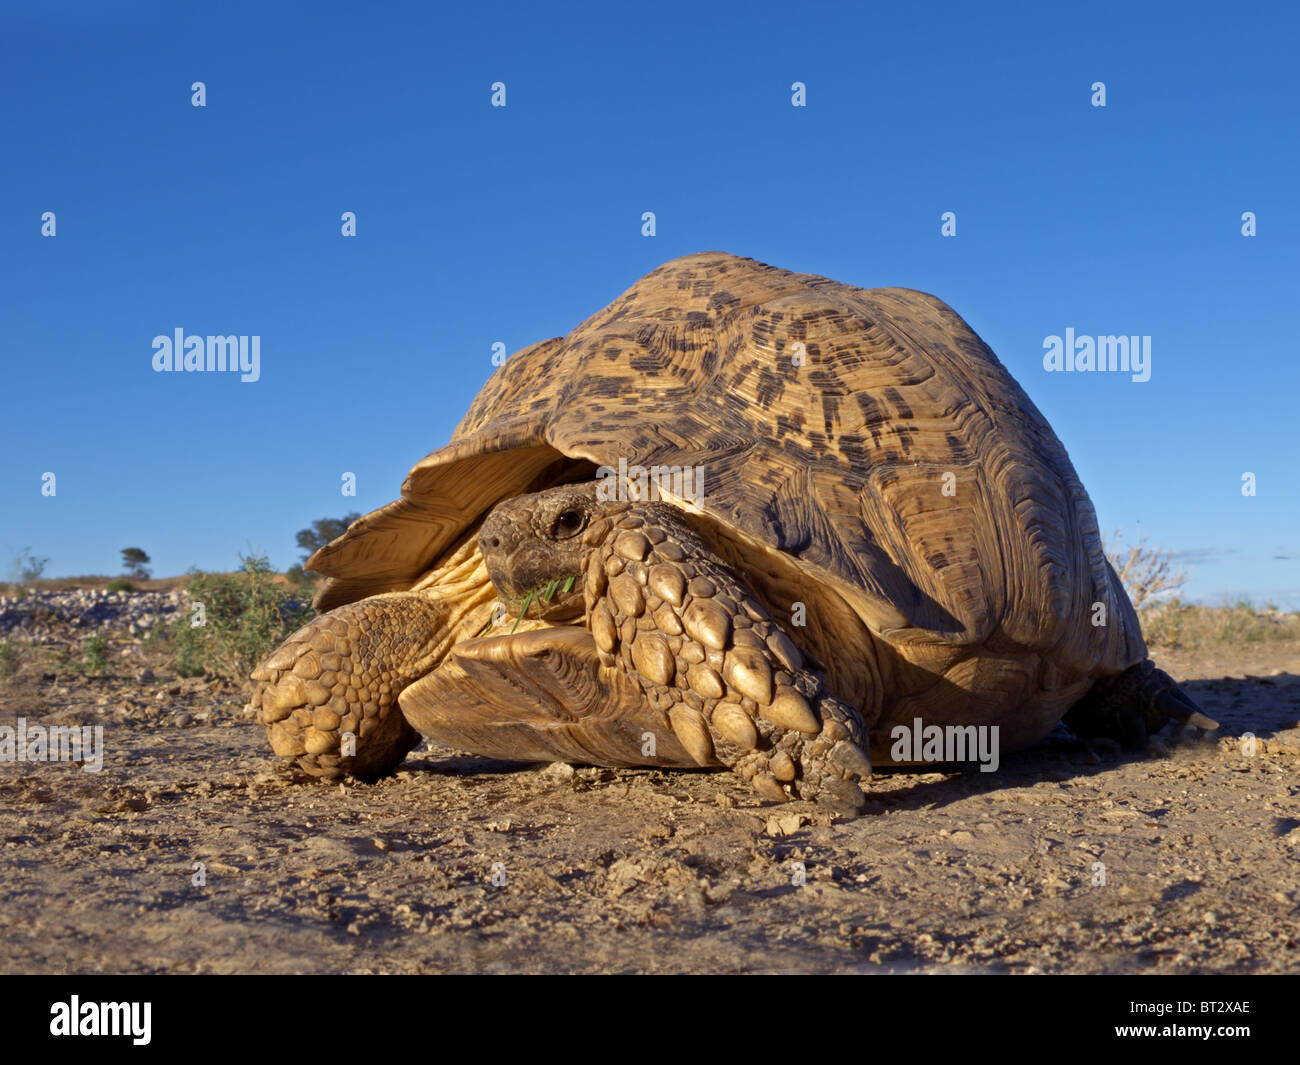 Mountain or leopard tortoise (Geochelone pardalis), Kgalagadi Transfrontier Park, South Africa - Stock Image